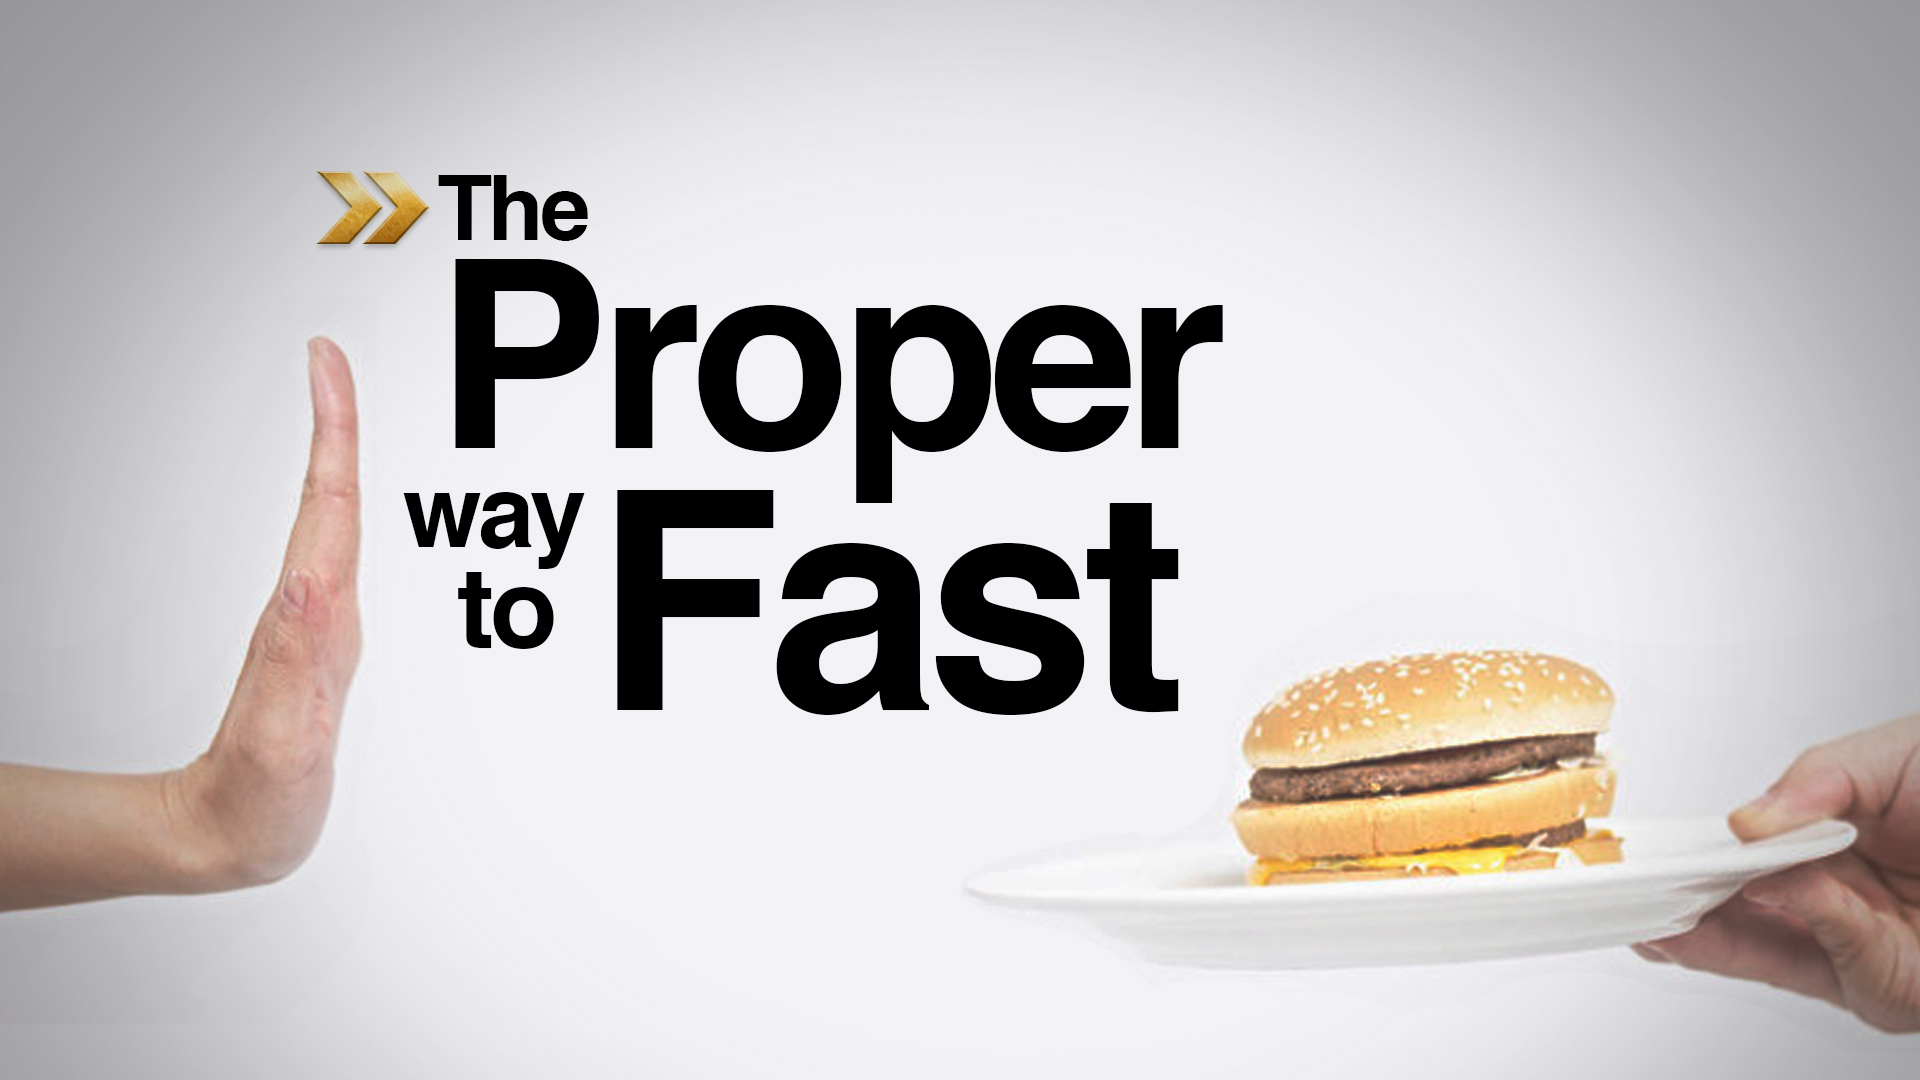 What Is the Proper Way to Fast?